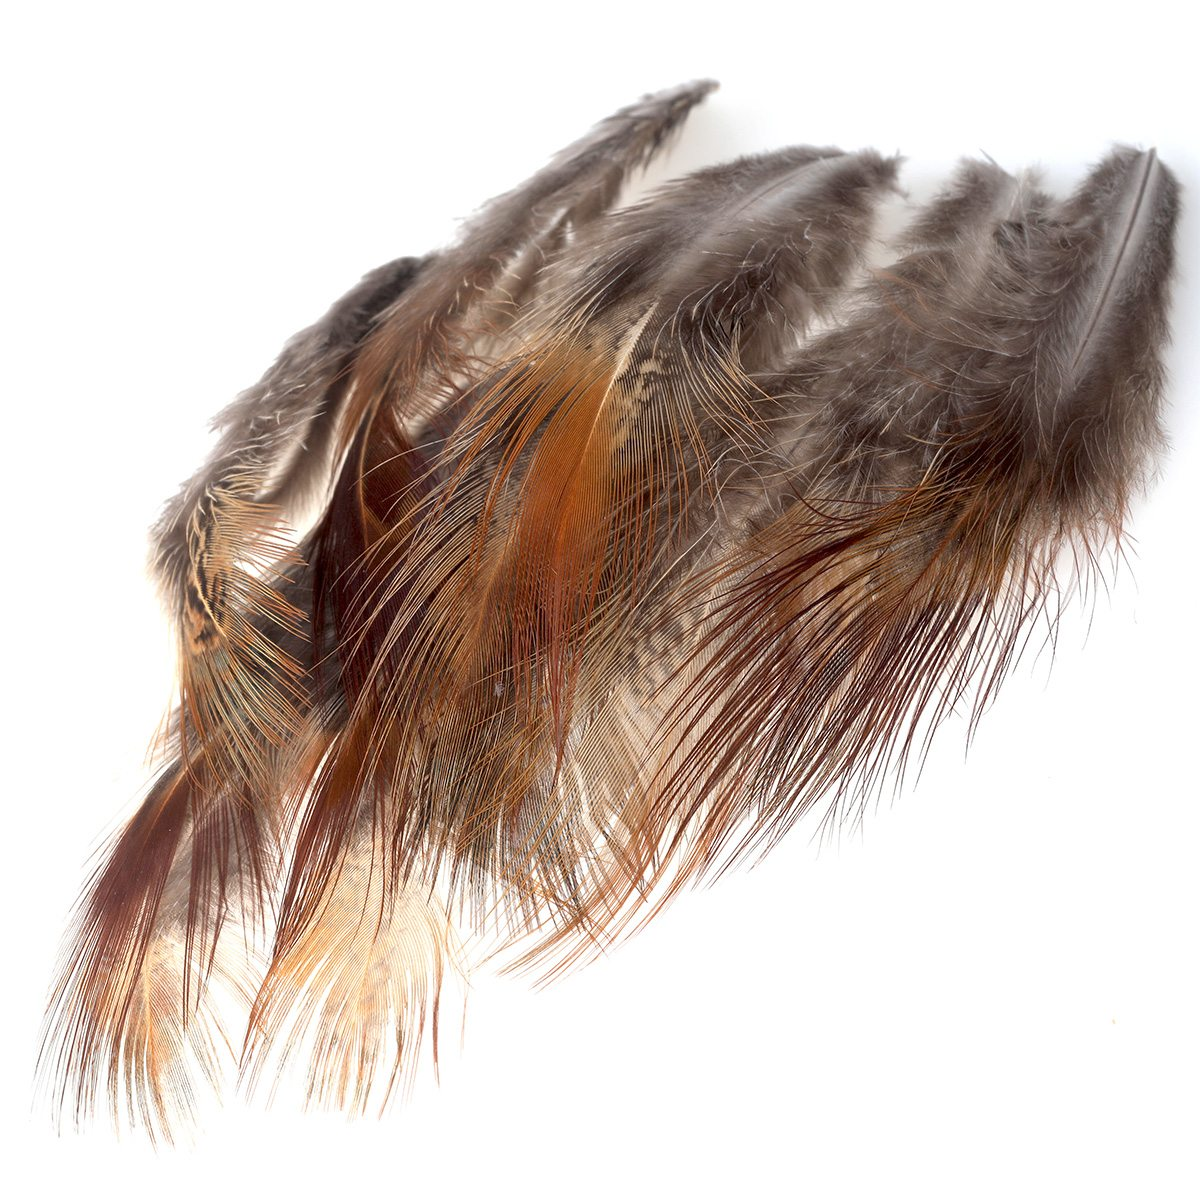 Pheasant Long Brown Rump Feathers